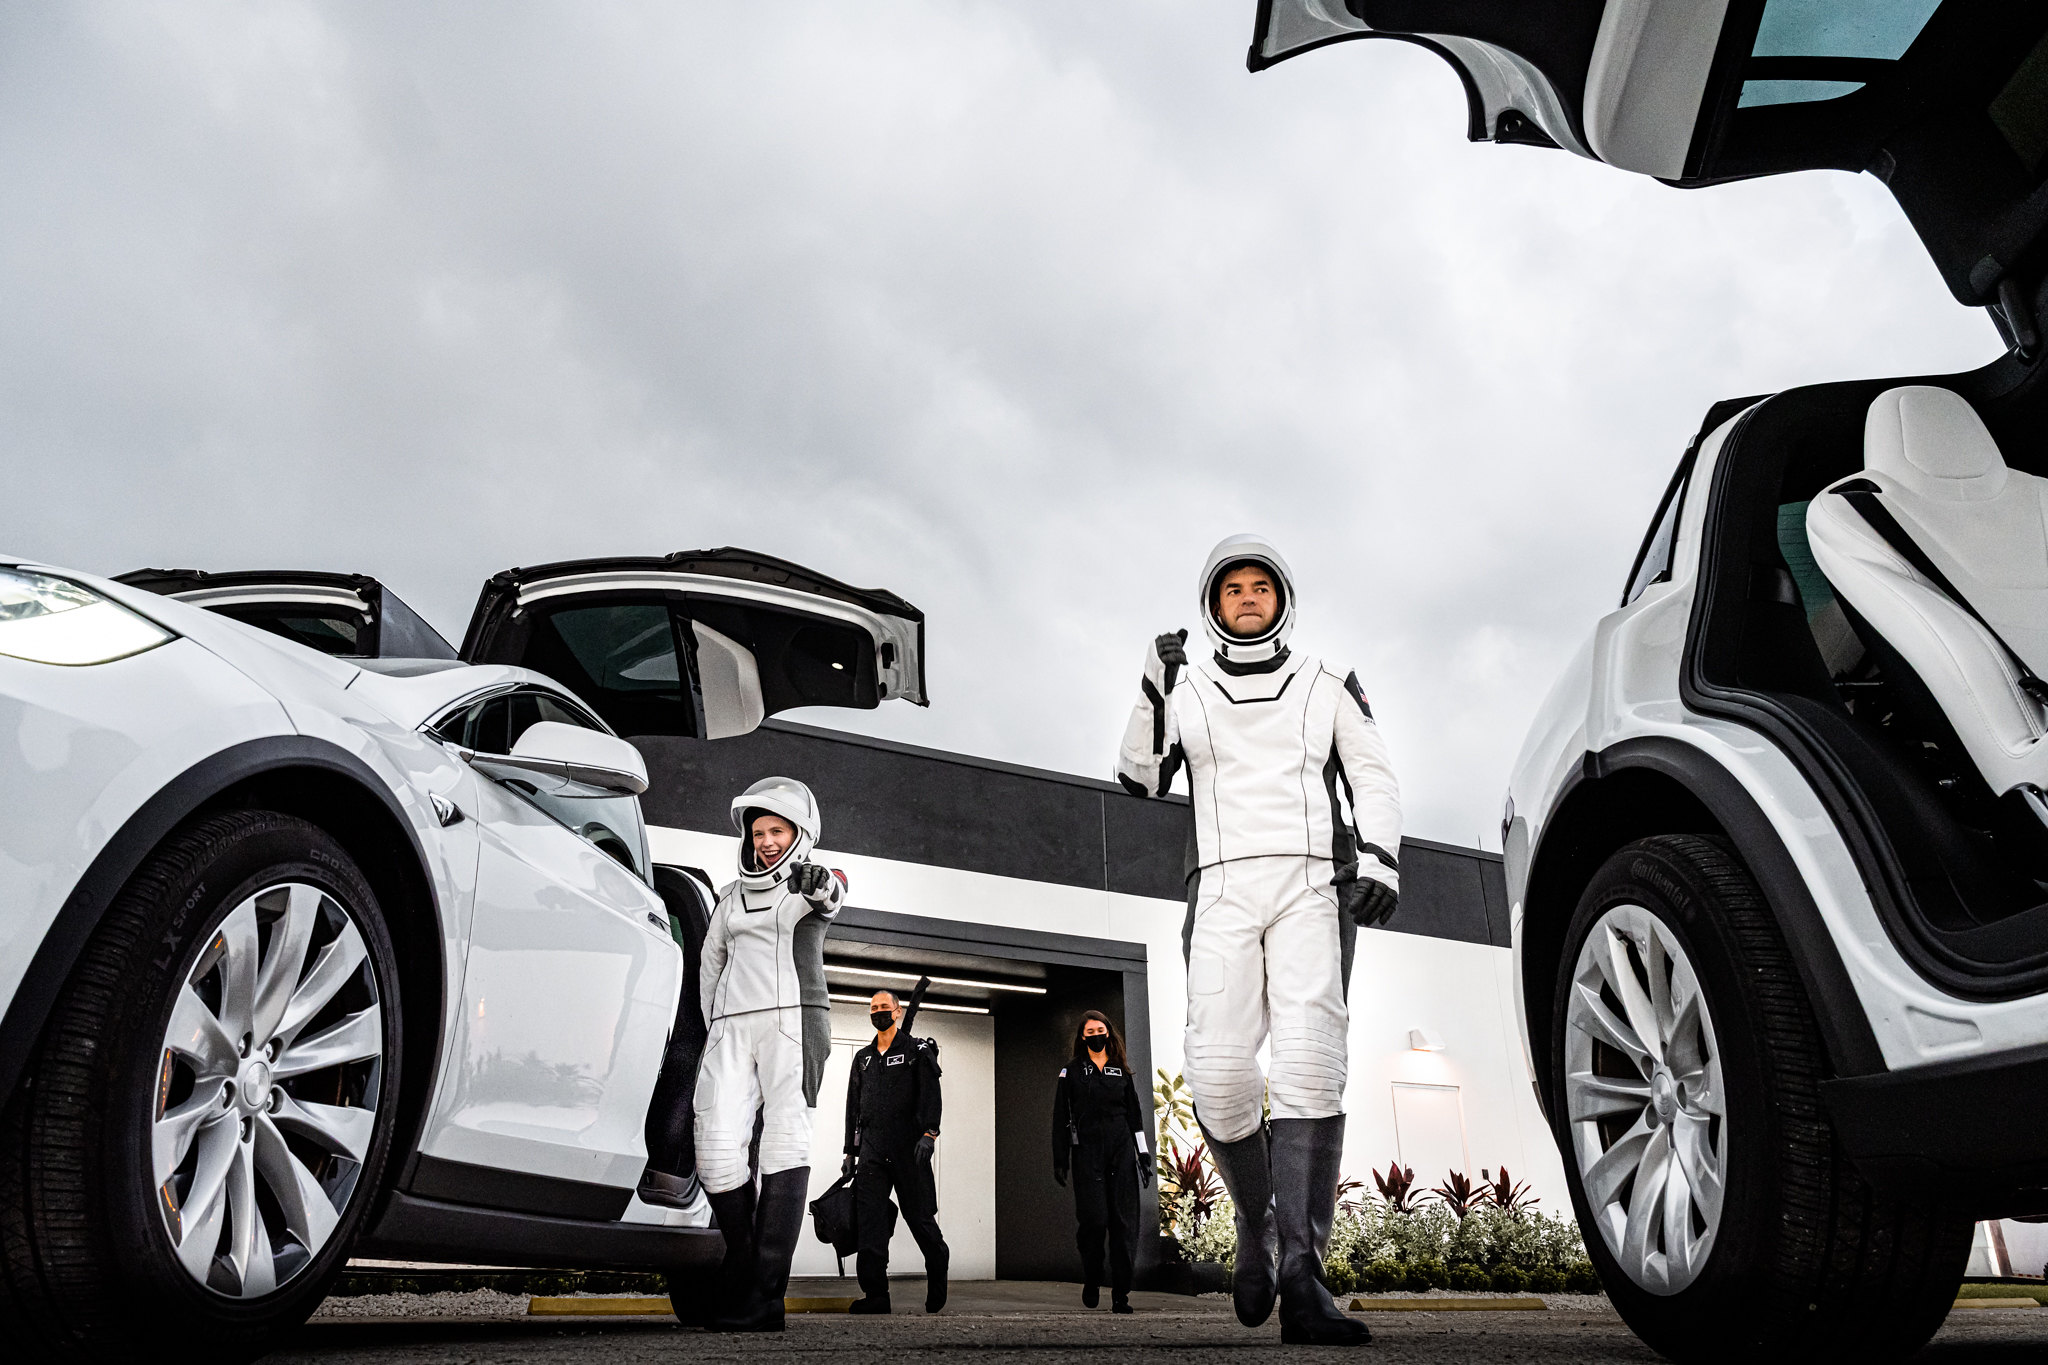 The Inspiration4 crew board their Teslas during a launch rehearsal on Sept. 12, 2021.